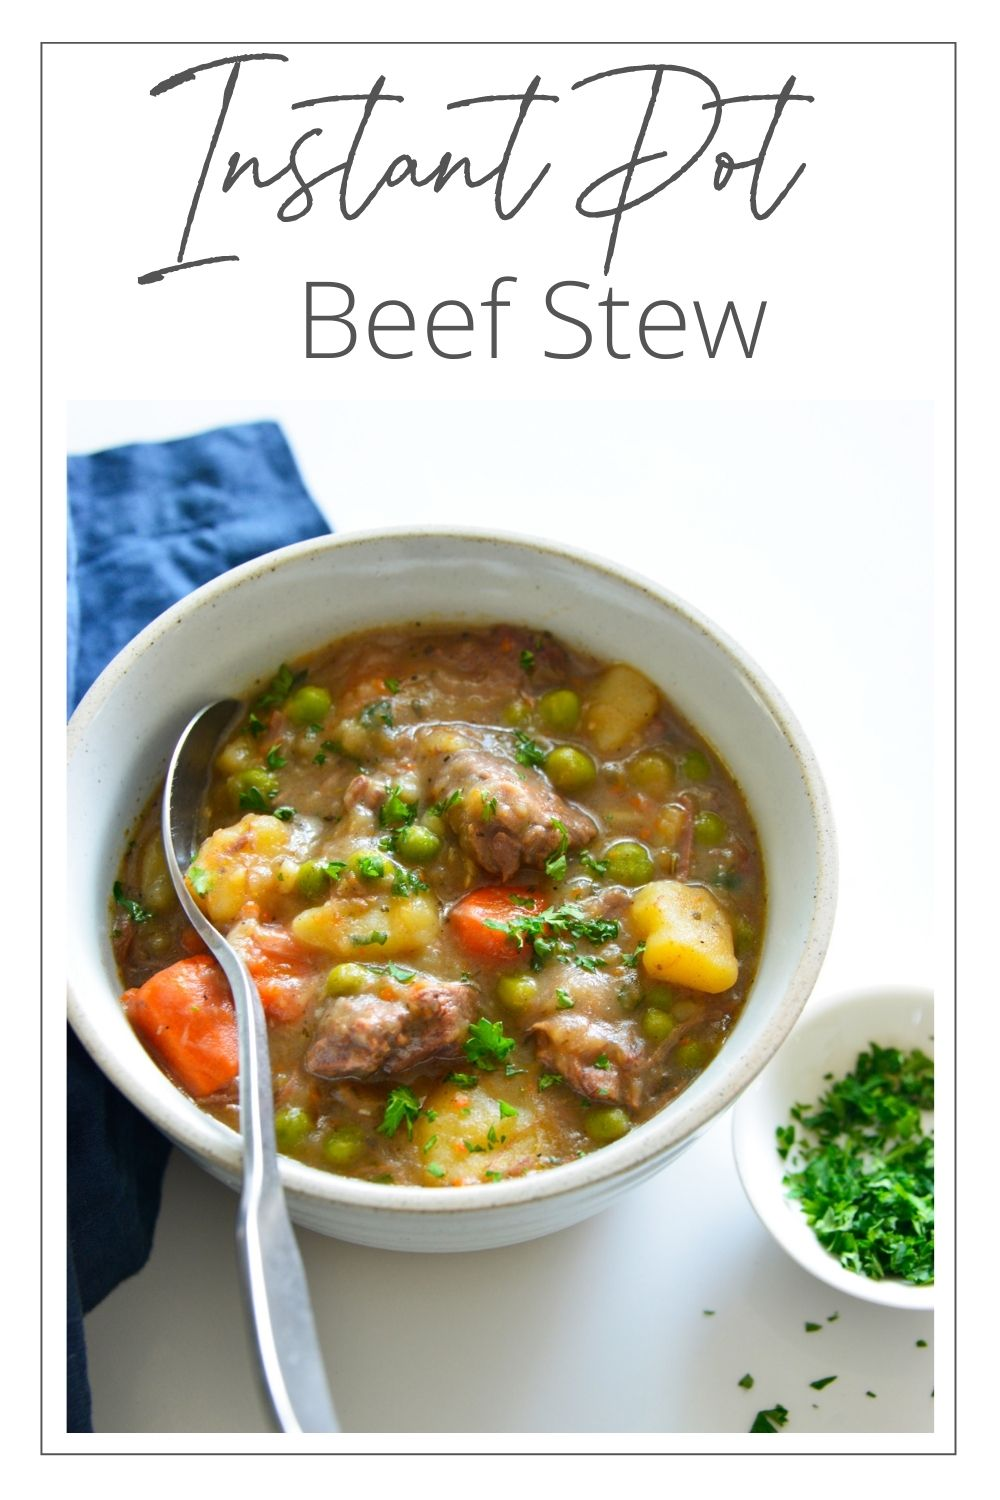 Instant Pot Beef Stew with logo.